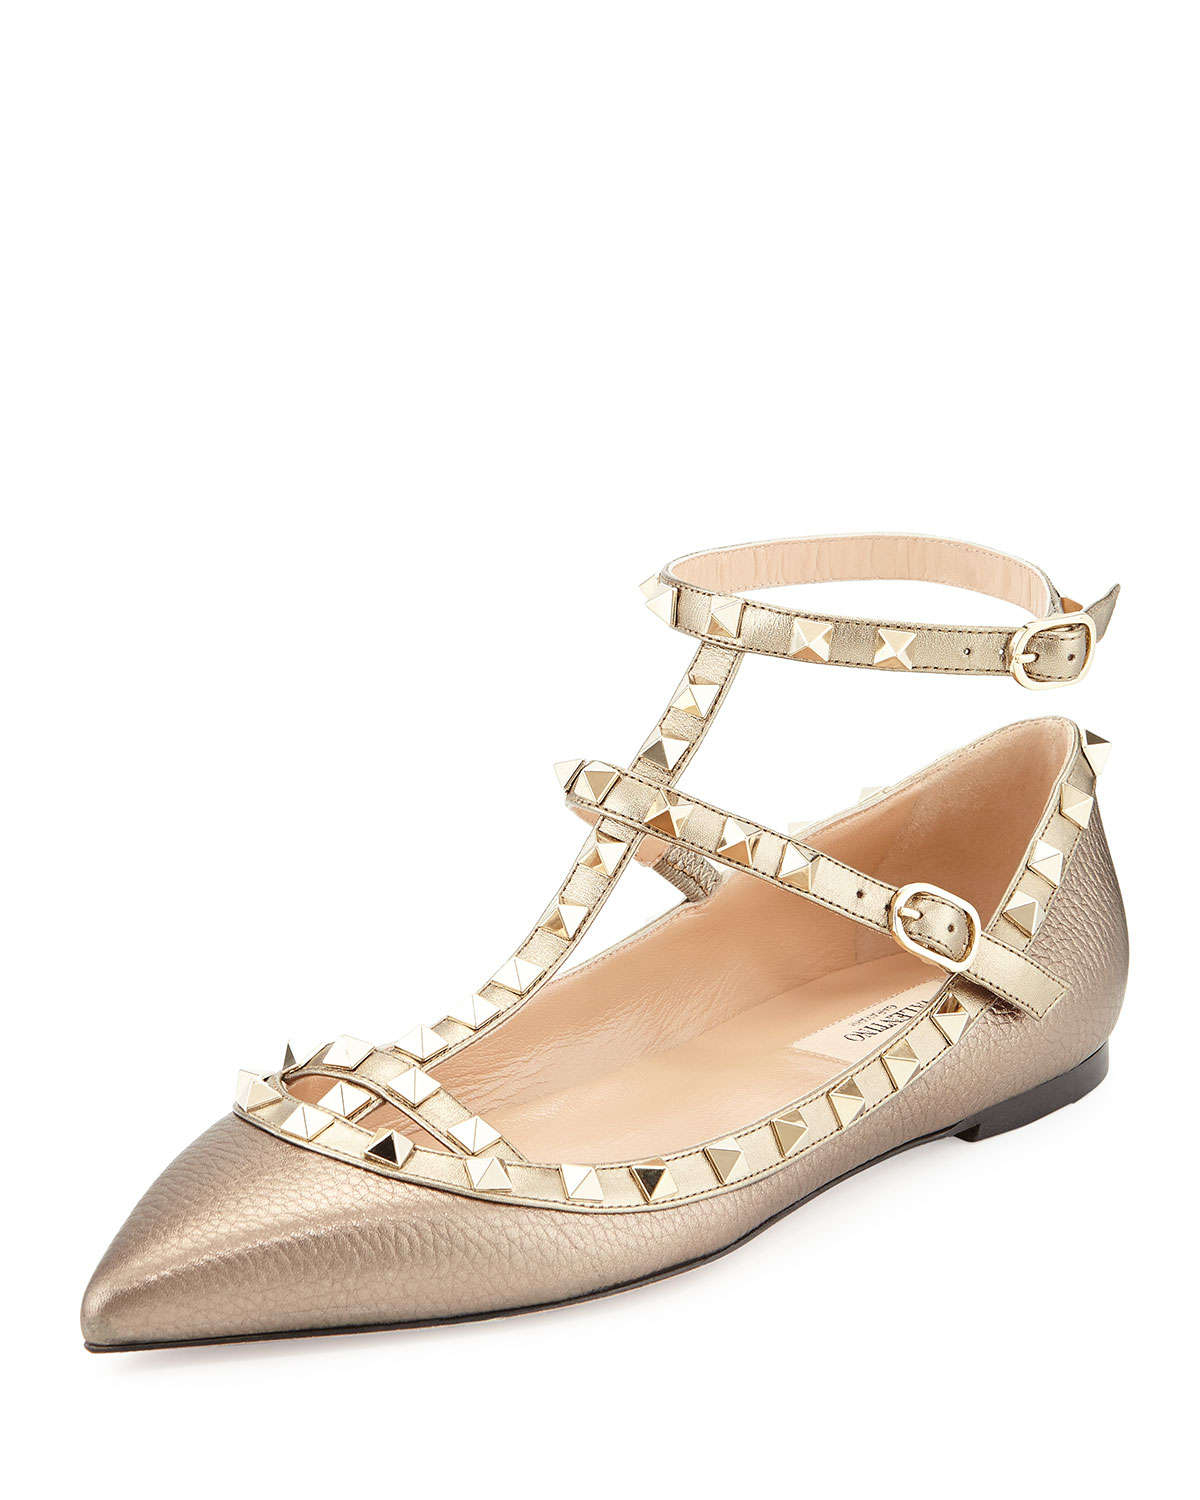 valentino rockstud caged leather ballet flats in gold sasso lyst. Black Bedroom Furniture Sets. Home Design Ideas